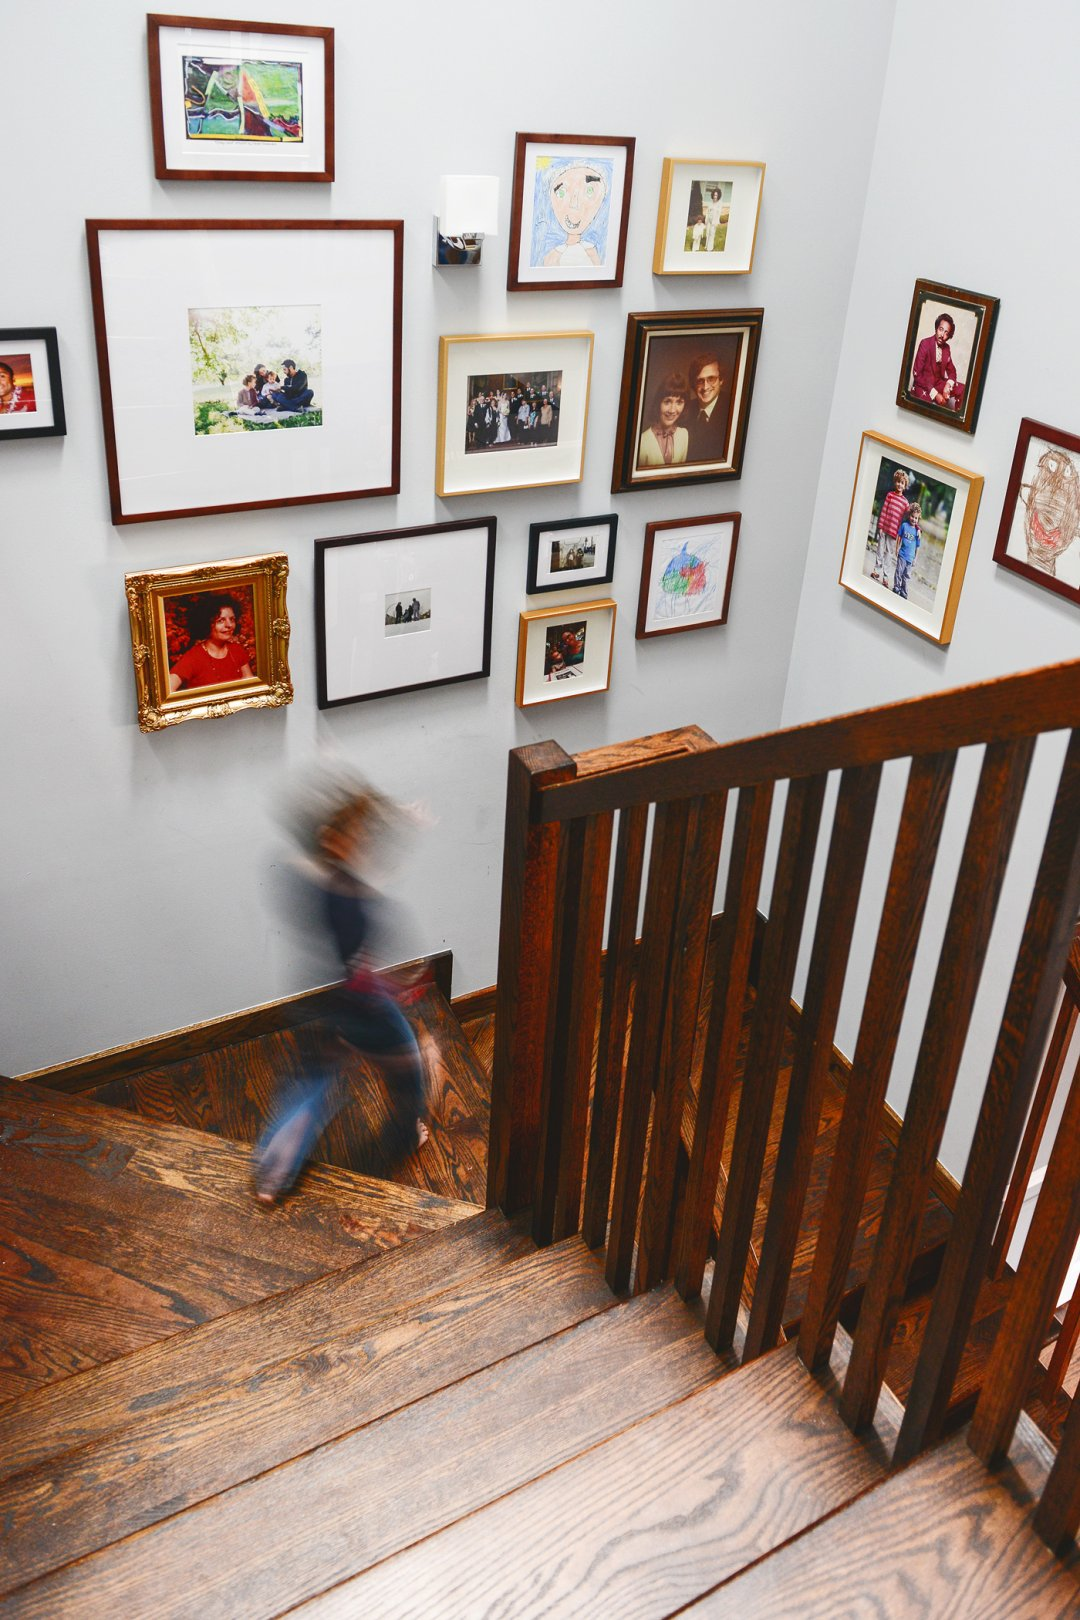 Boy walking down the stairs in front of photo wall